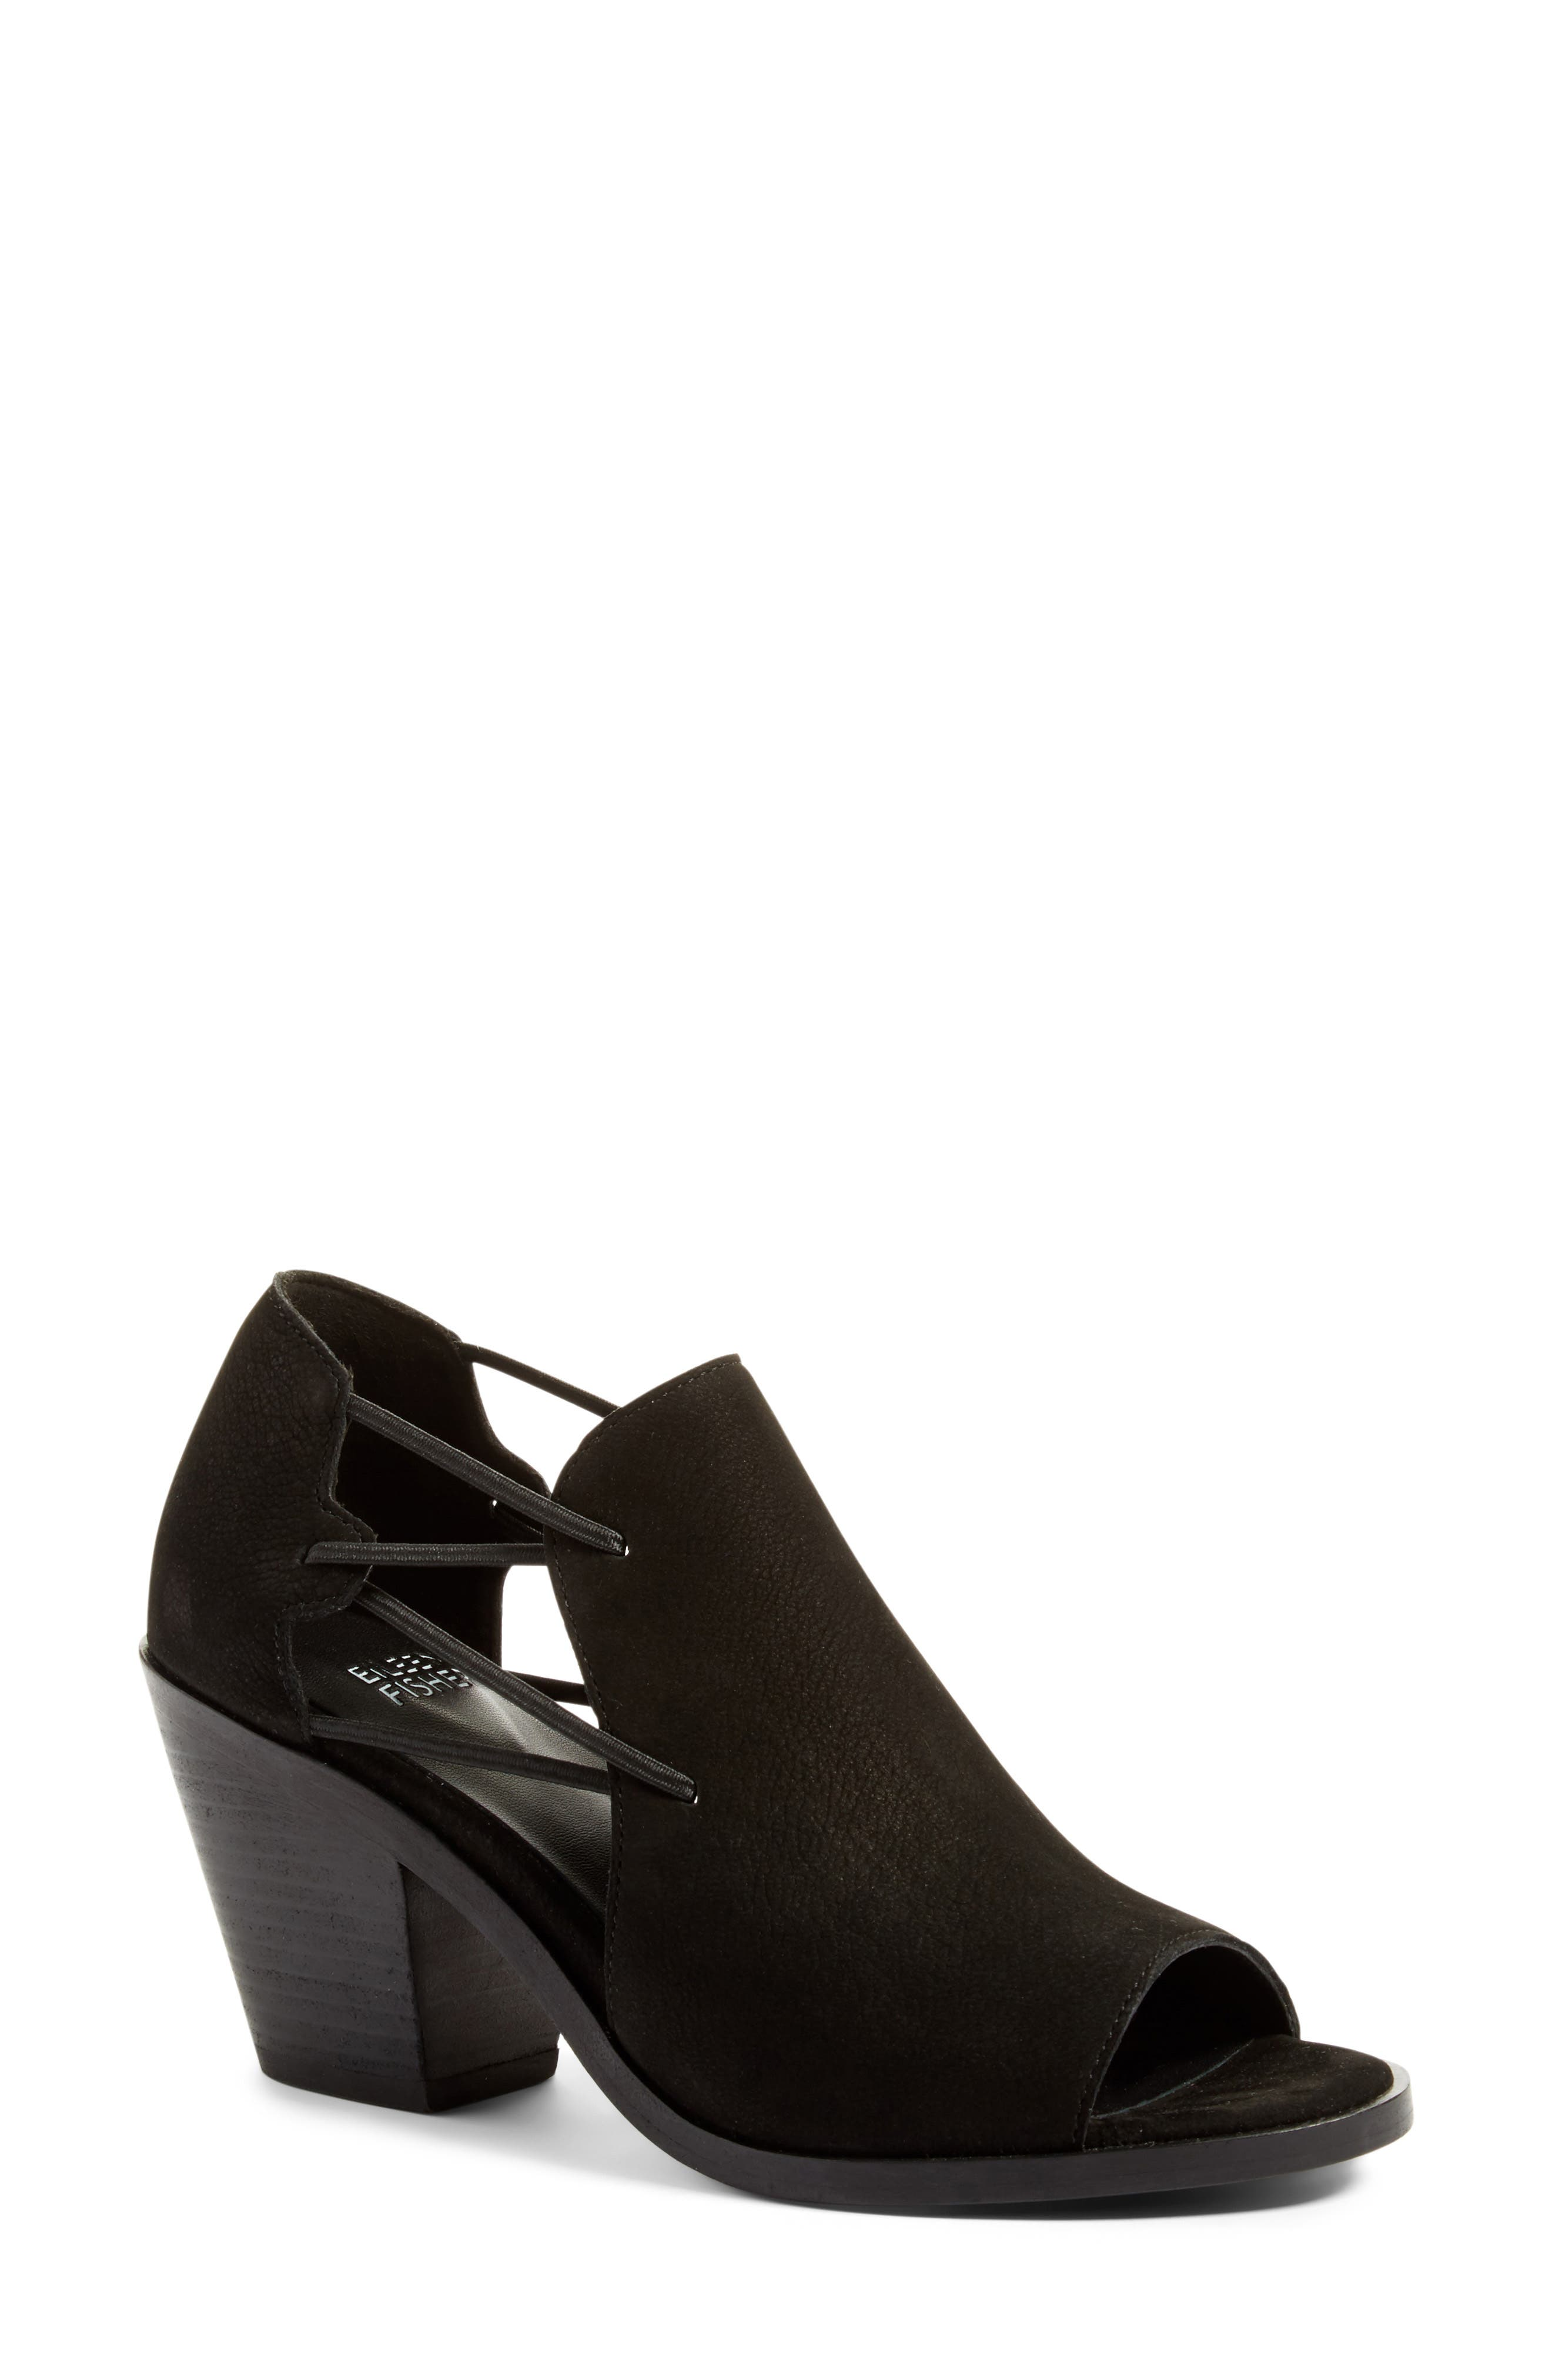 Nikki Peep Toe Sandal,                             Main thumbnail 1, color,                             Black Leather